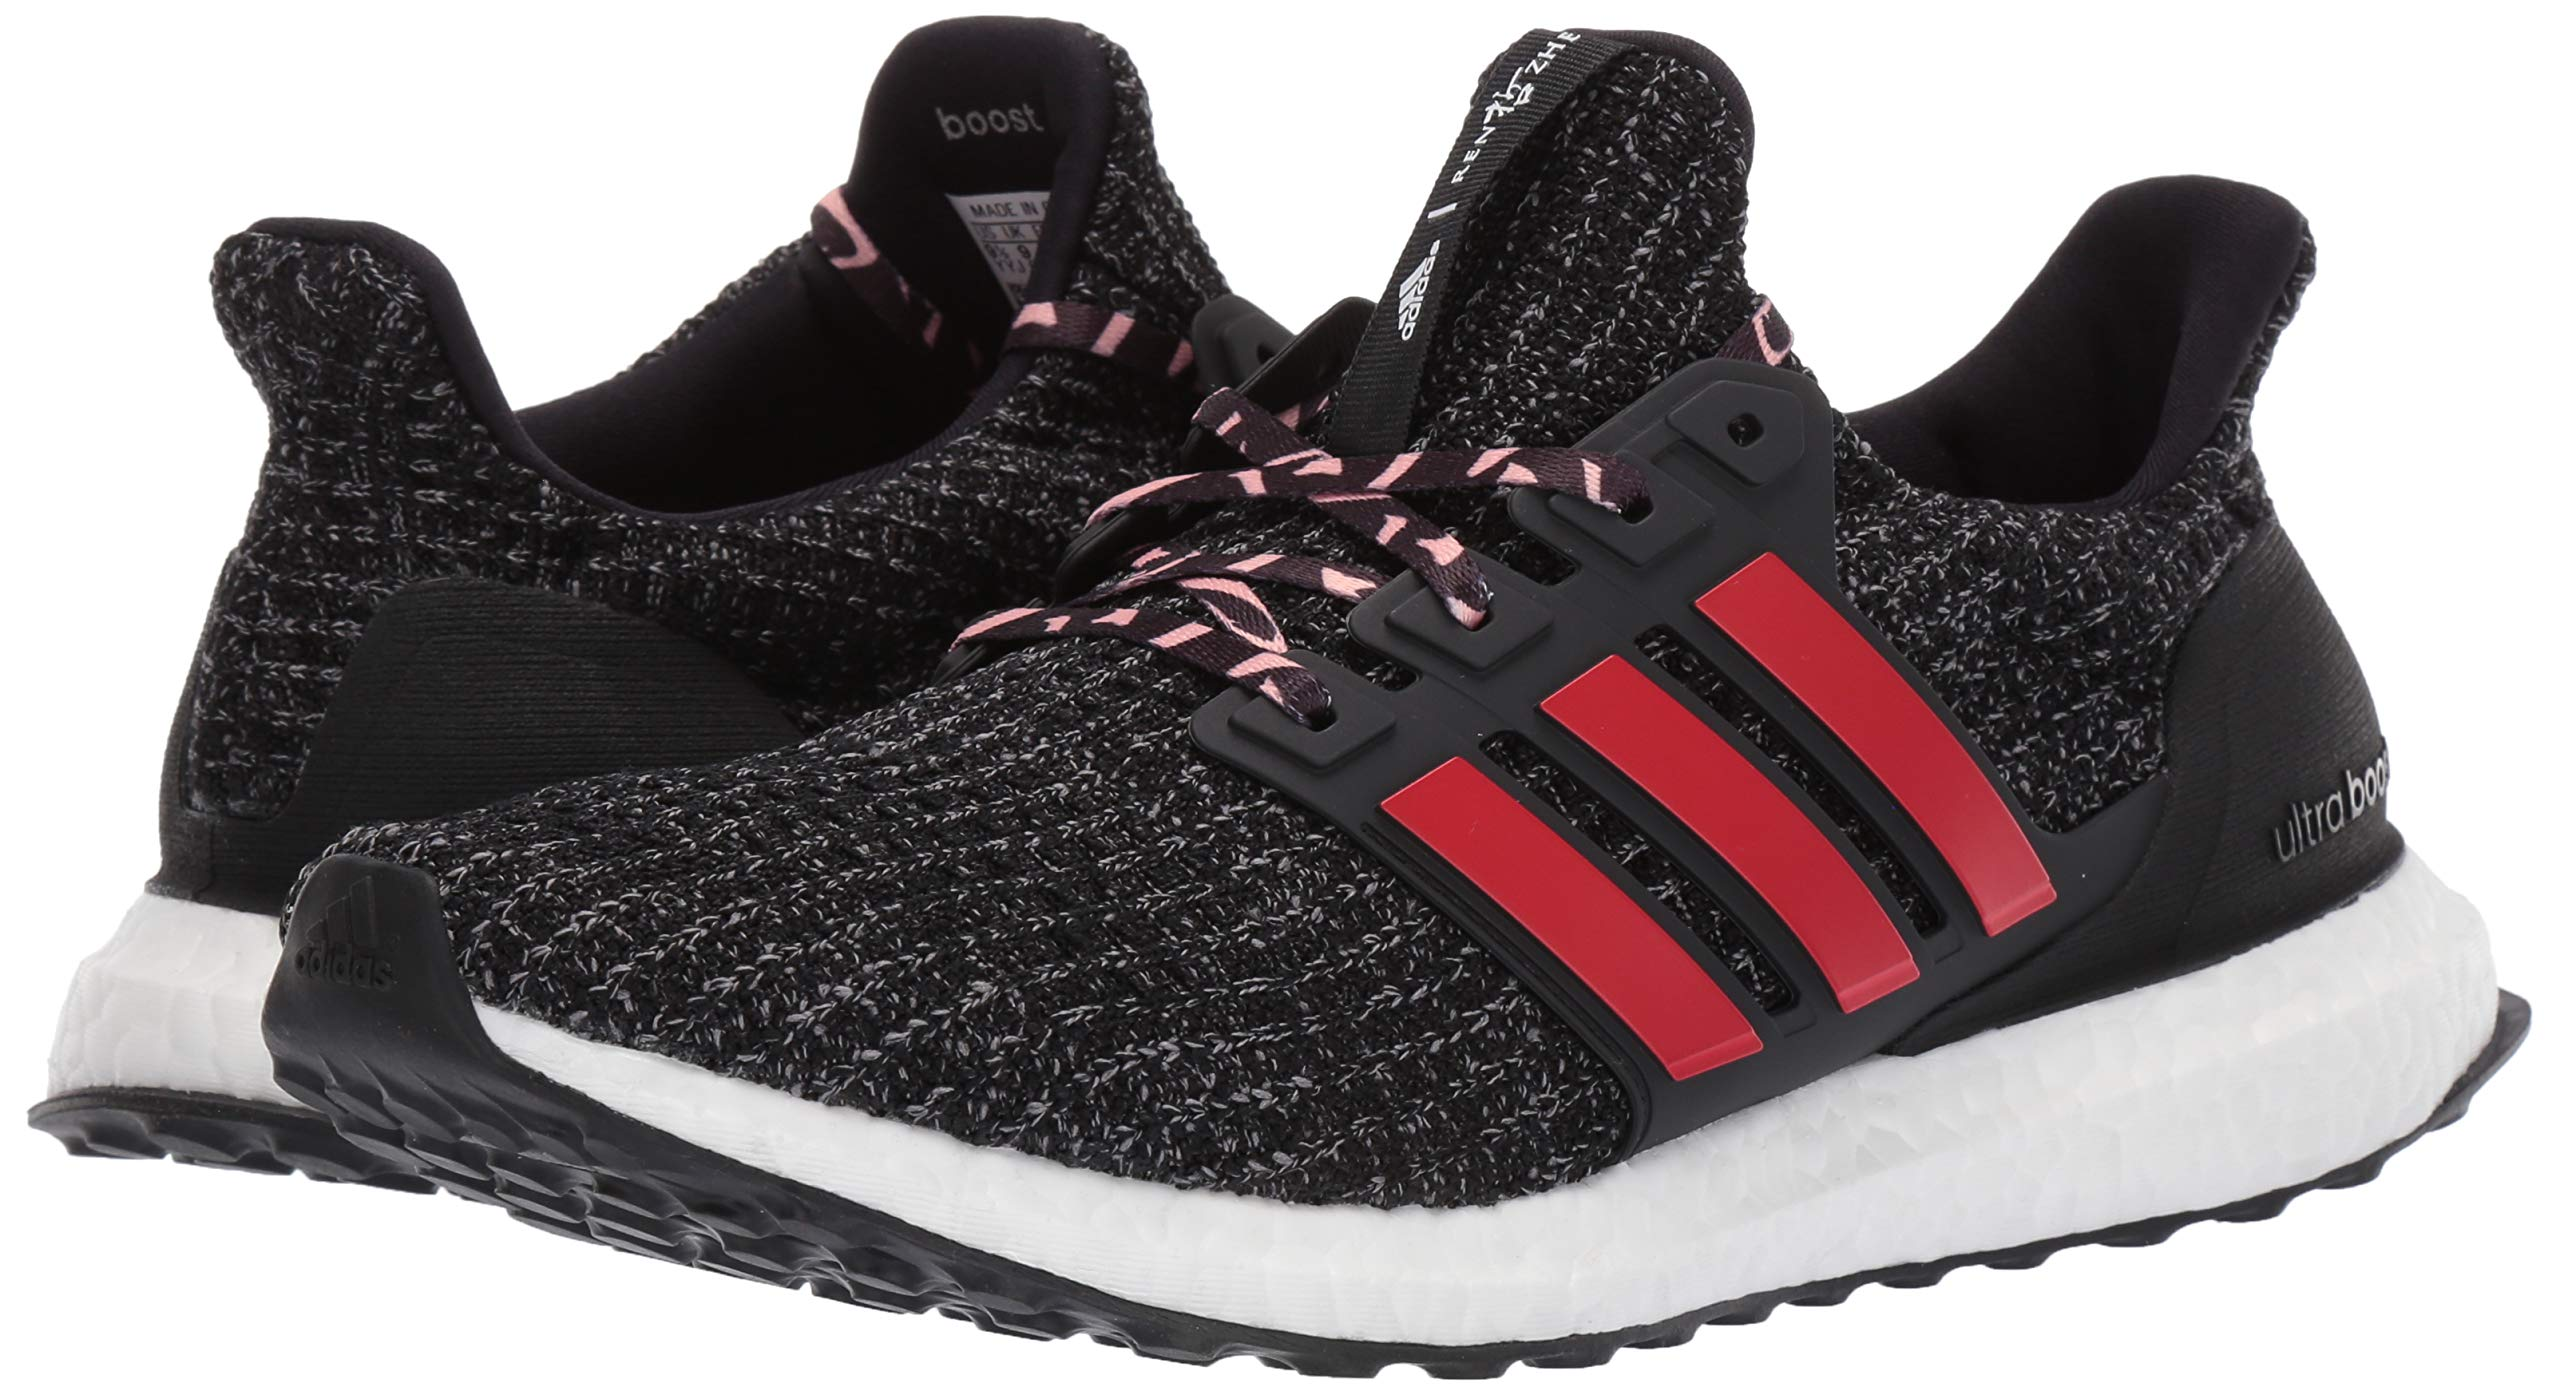 adidas Men's Ultraboost, Black/Scarlet/Grey 4 M US by adidas (Image #6)